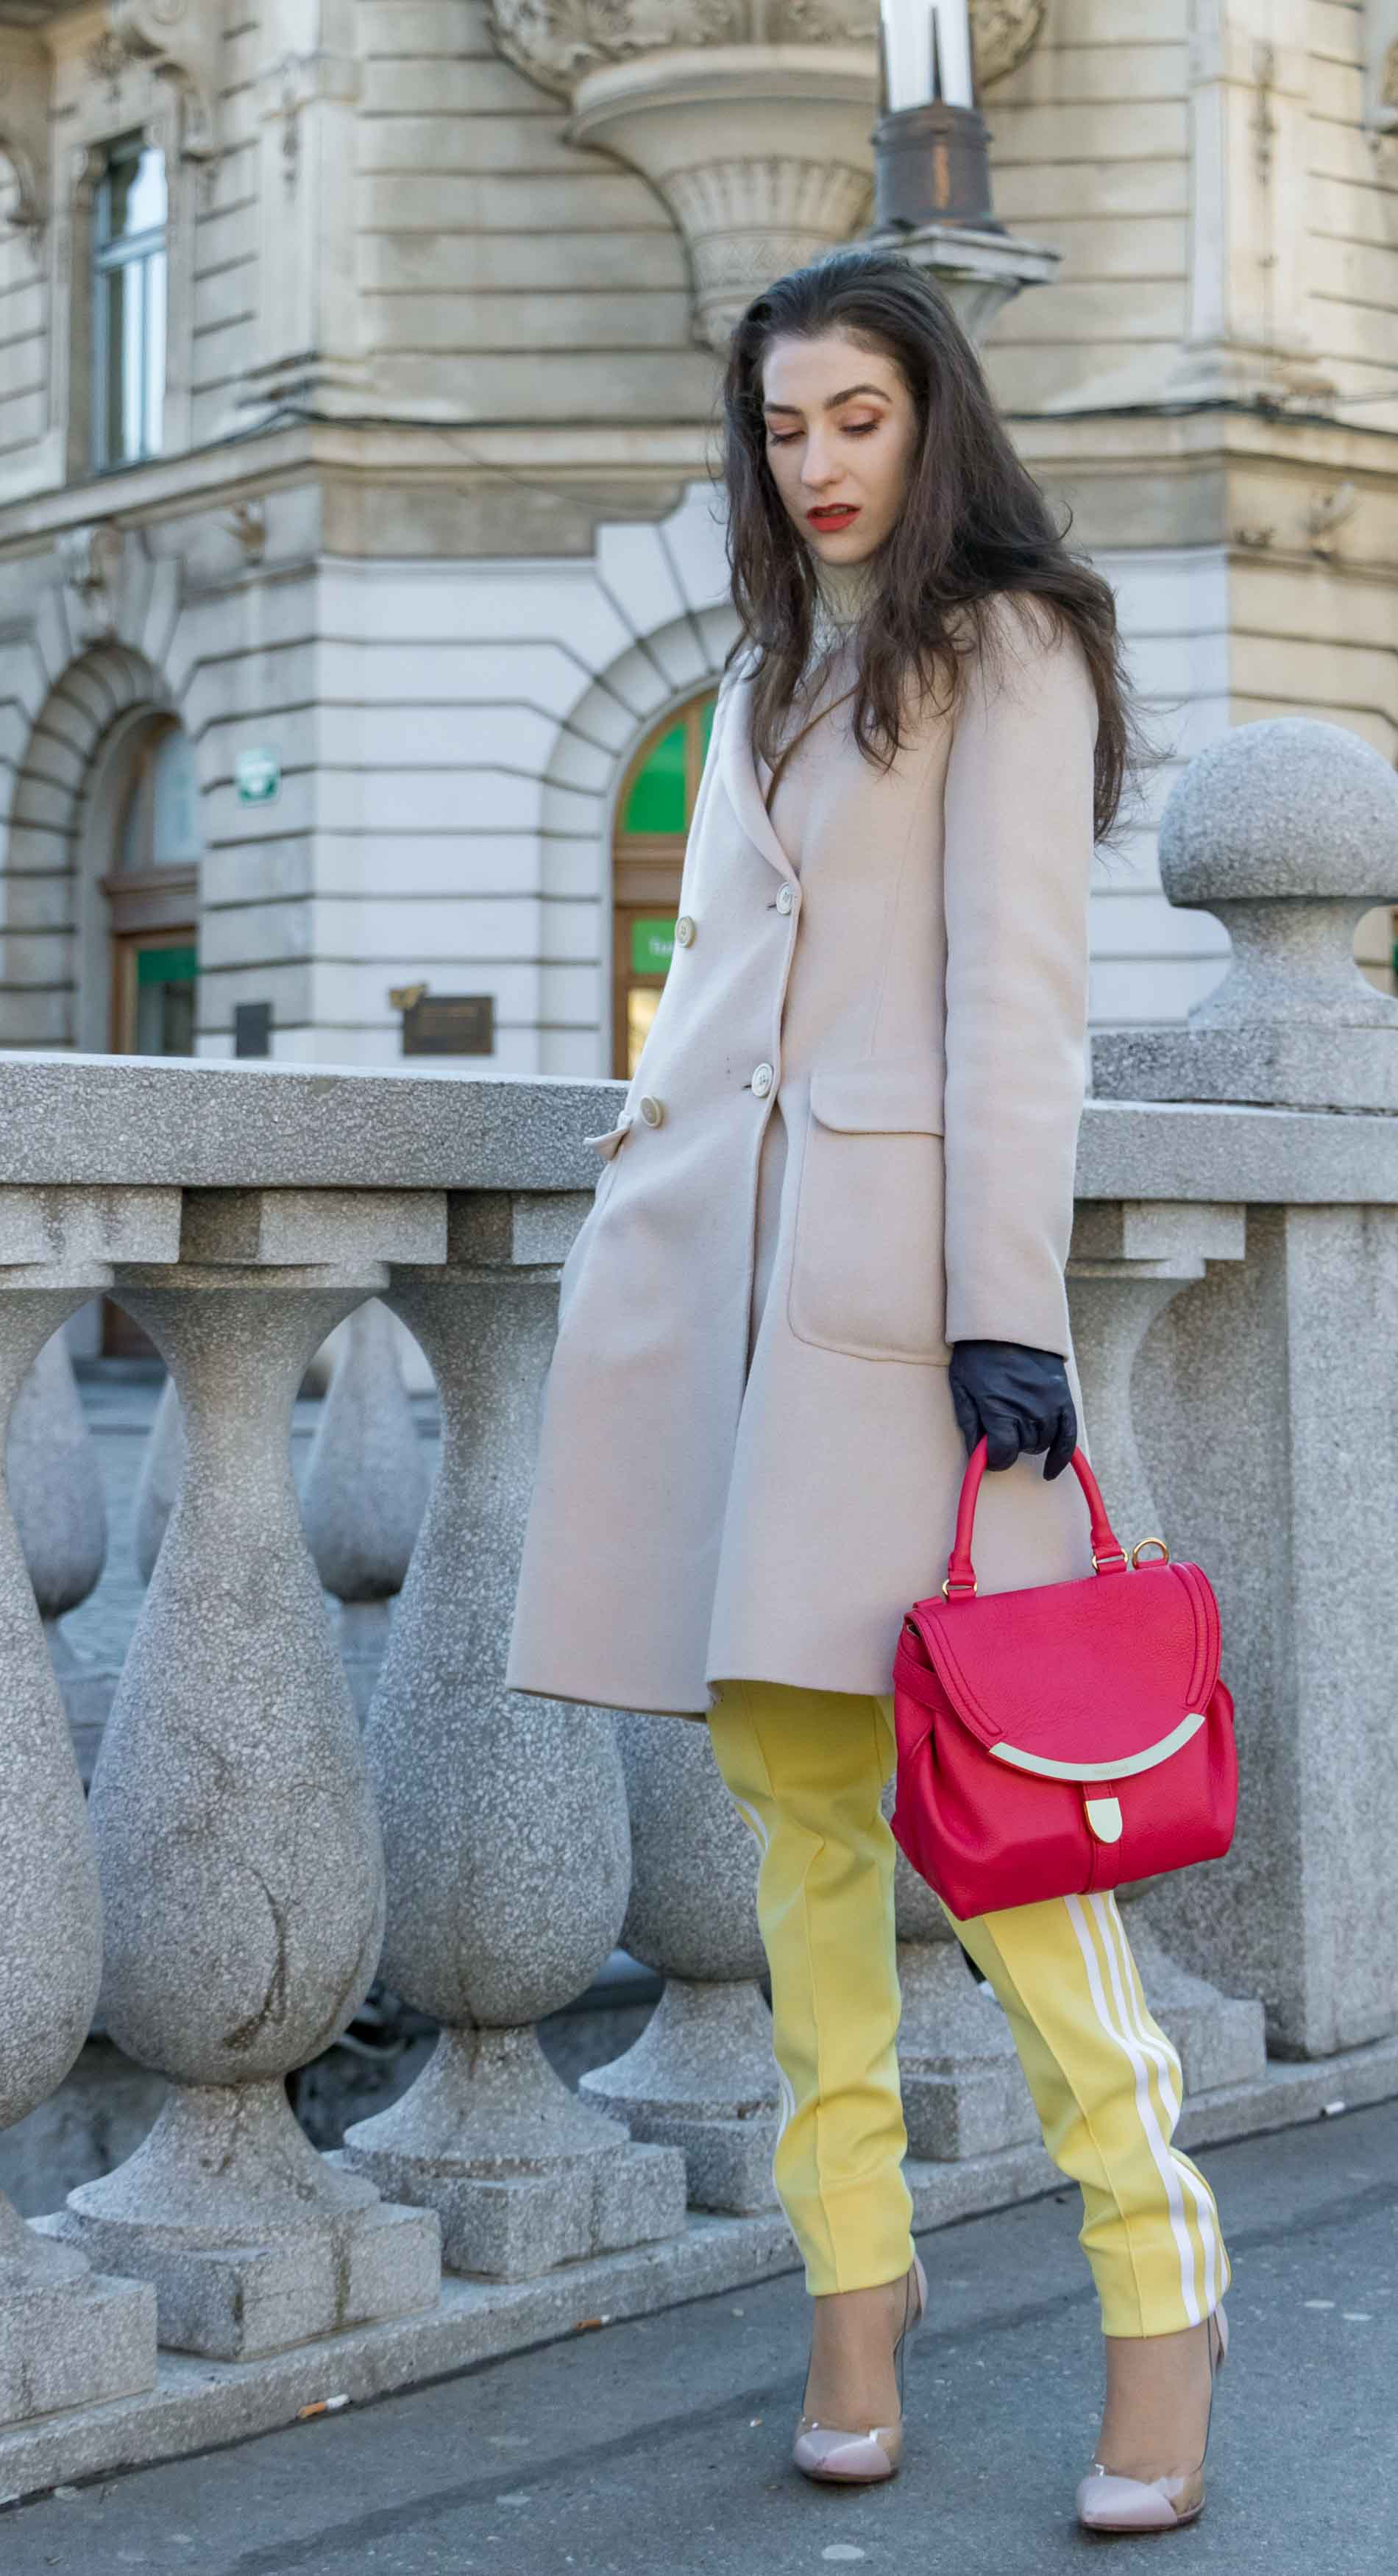 Fashion Blogger Veronika Lipar of Brunette from Wall Street wearing yellow track pants with white stripes from Adidas, white turtleneck knit sweater, off-white pastel double breasted coat from Weekend Max Mara, blush powder transparent plexi pumps from Gianvito Rossi, pink top handle bag from See by Chloe while standing on the bridge in Ljubljana on a cold spring day